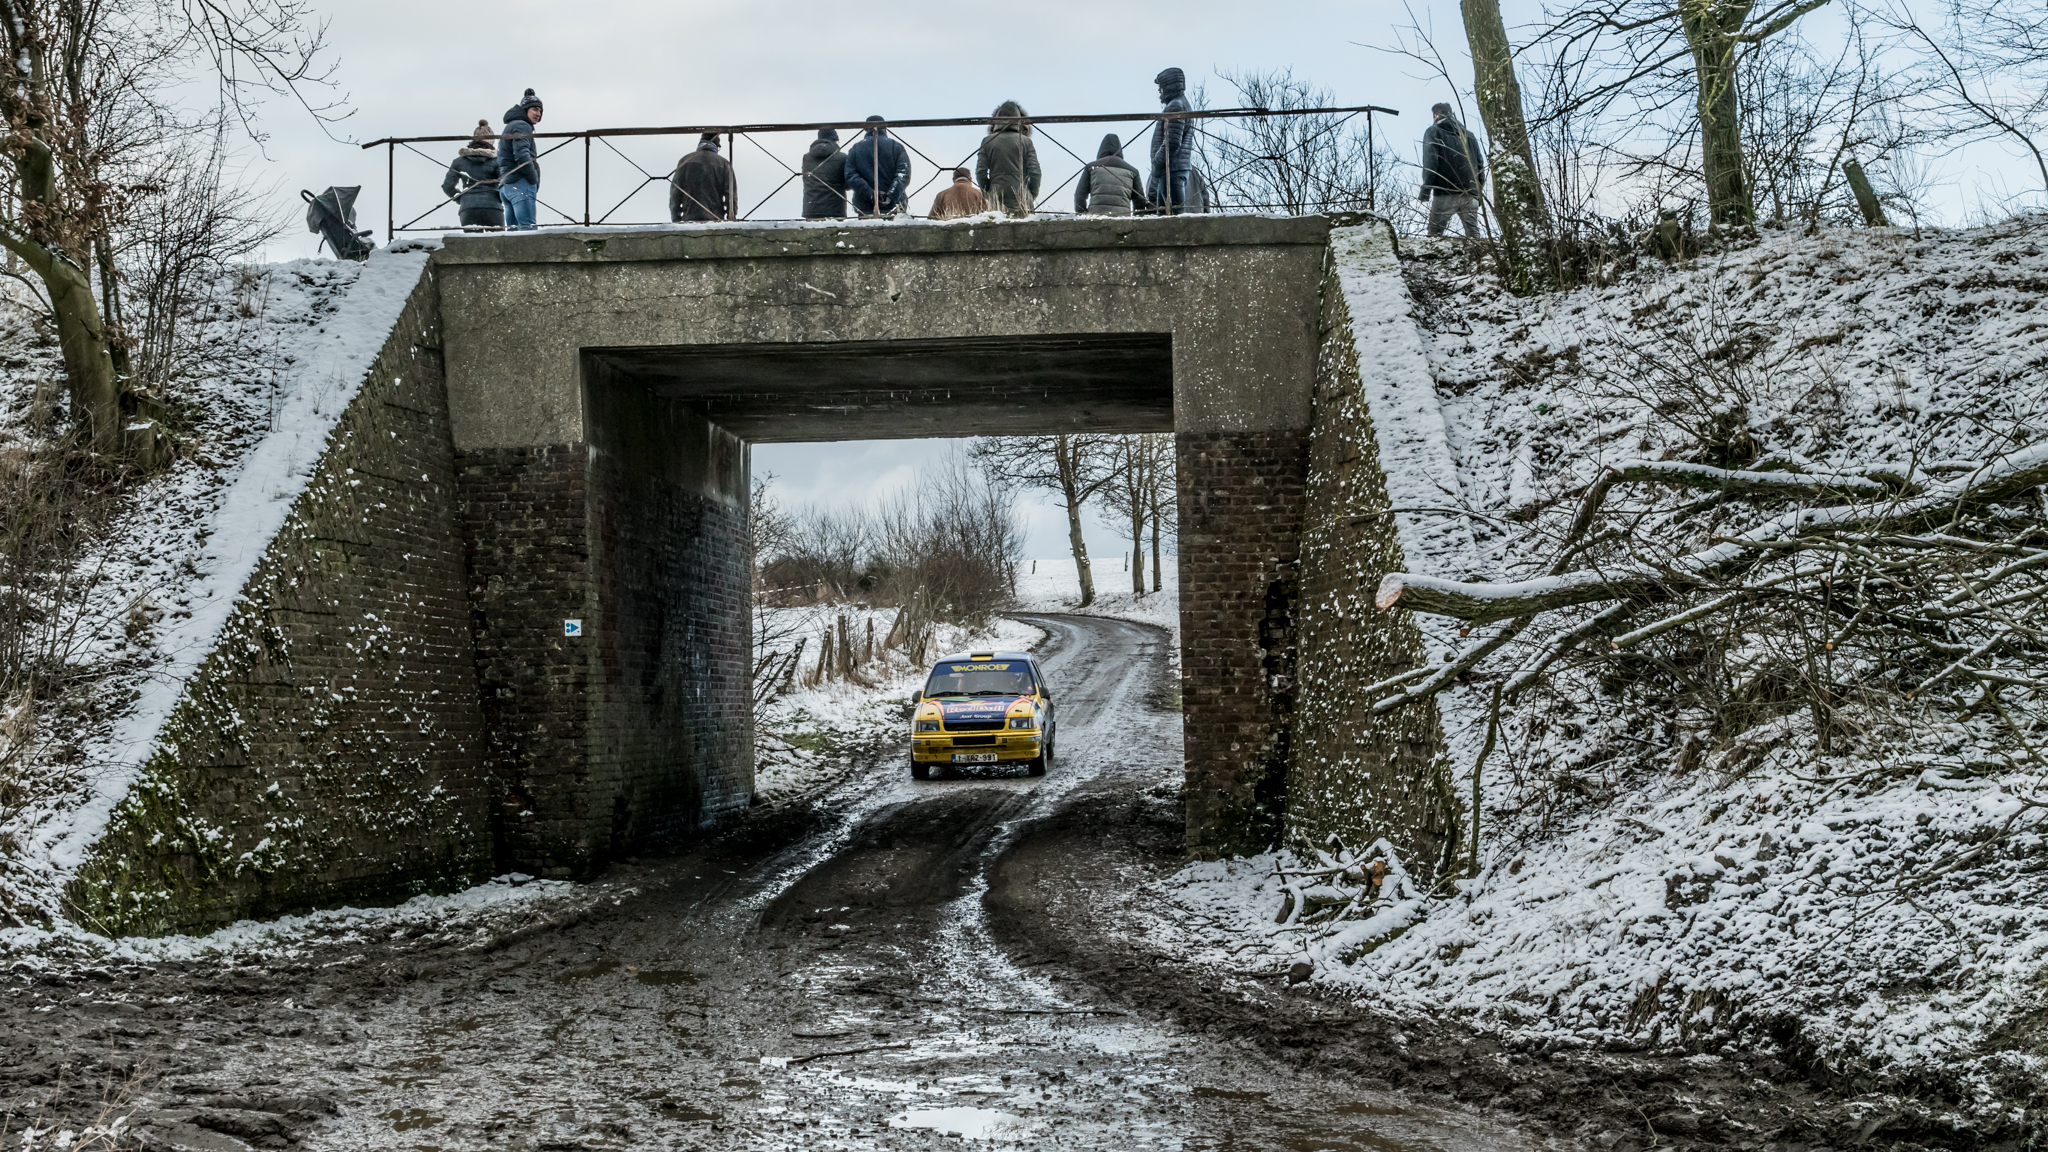 Thierry Neuville and Nicolas Gilsoul in their Opel Corsa